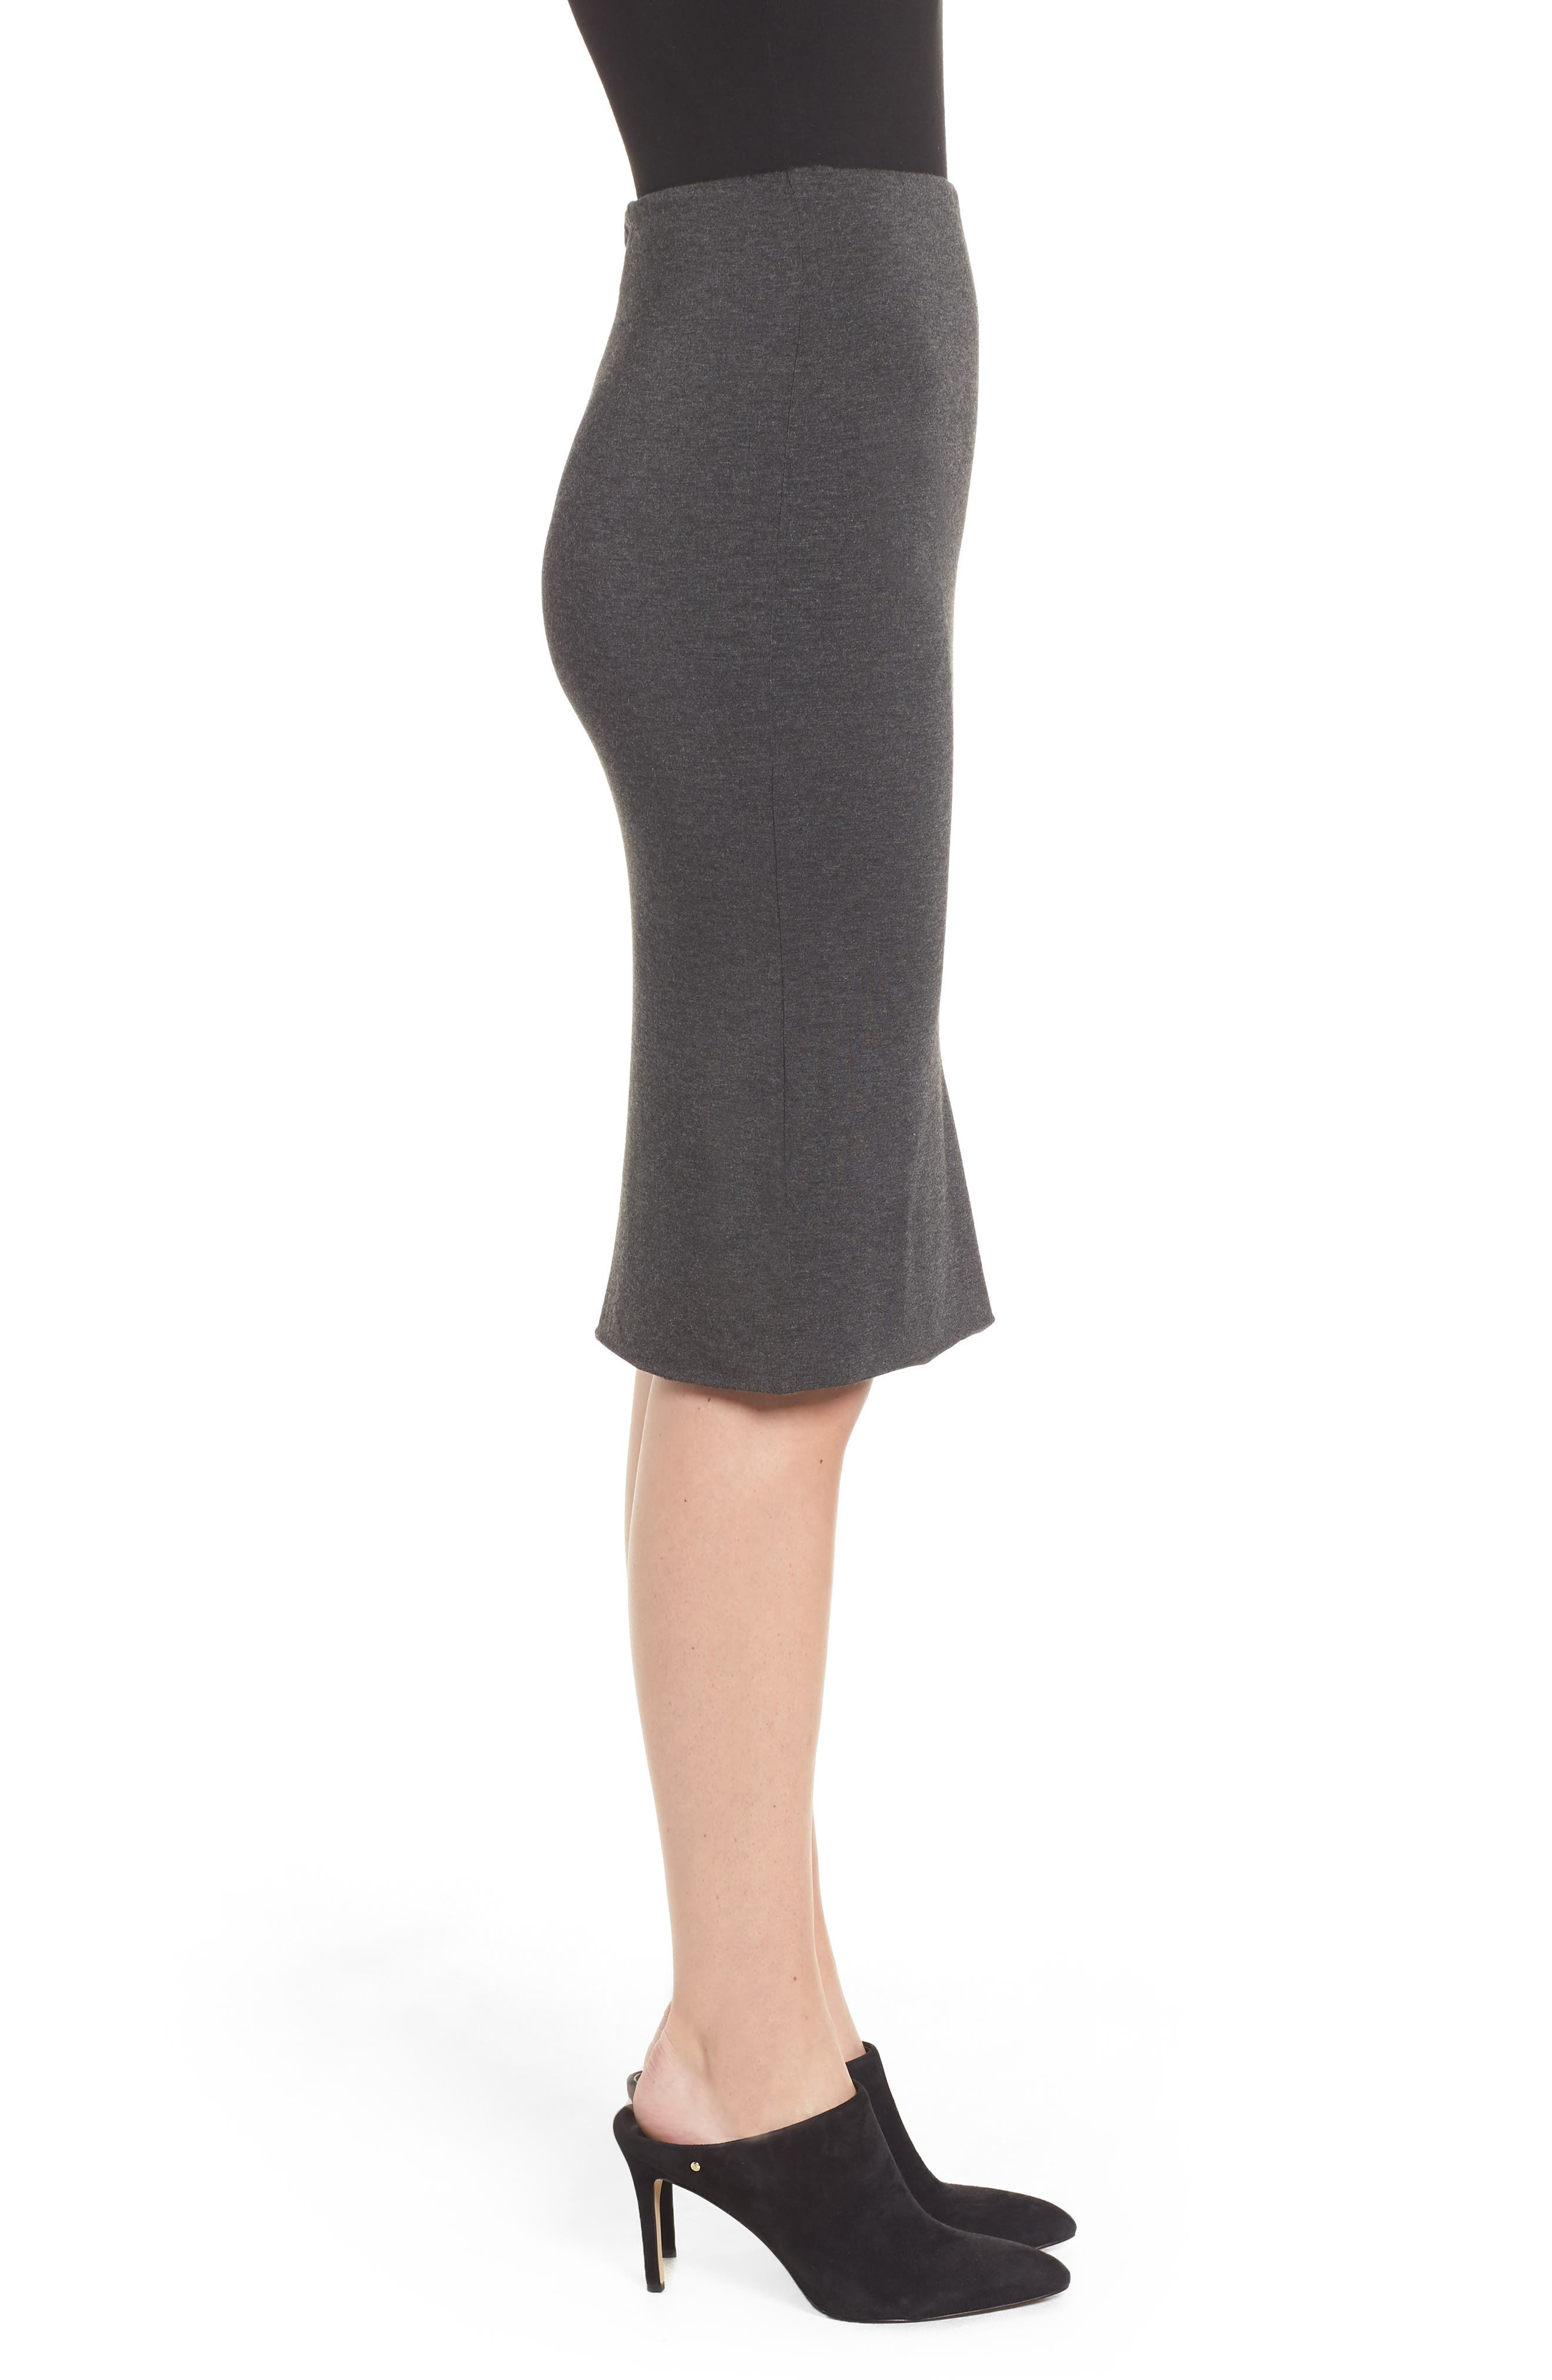 AMOUR VERT, 'Yuma' Stretch Knit Skirt, Alternate thumbnail 3, color, ANTHRACITE